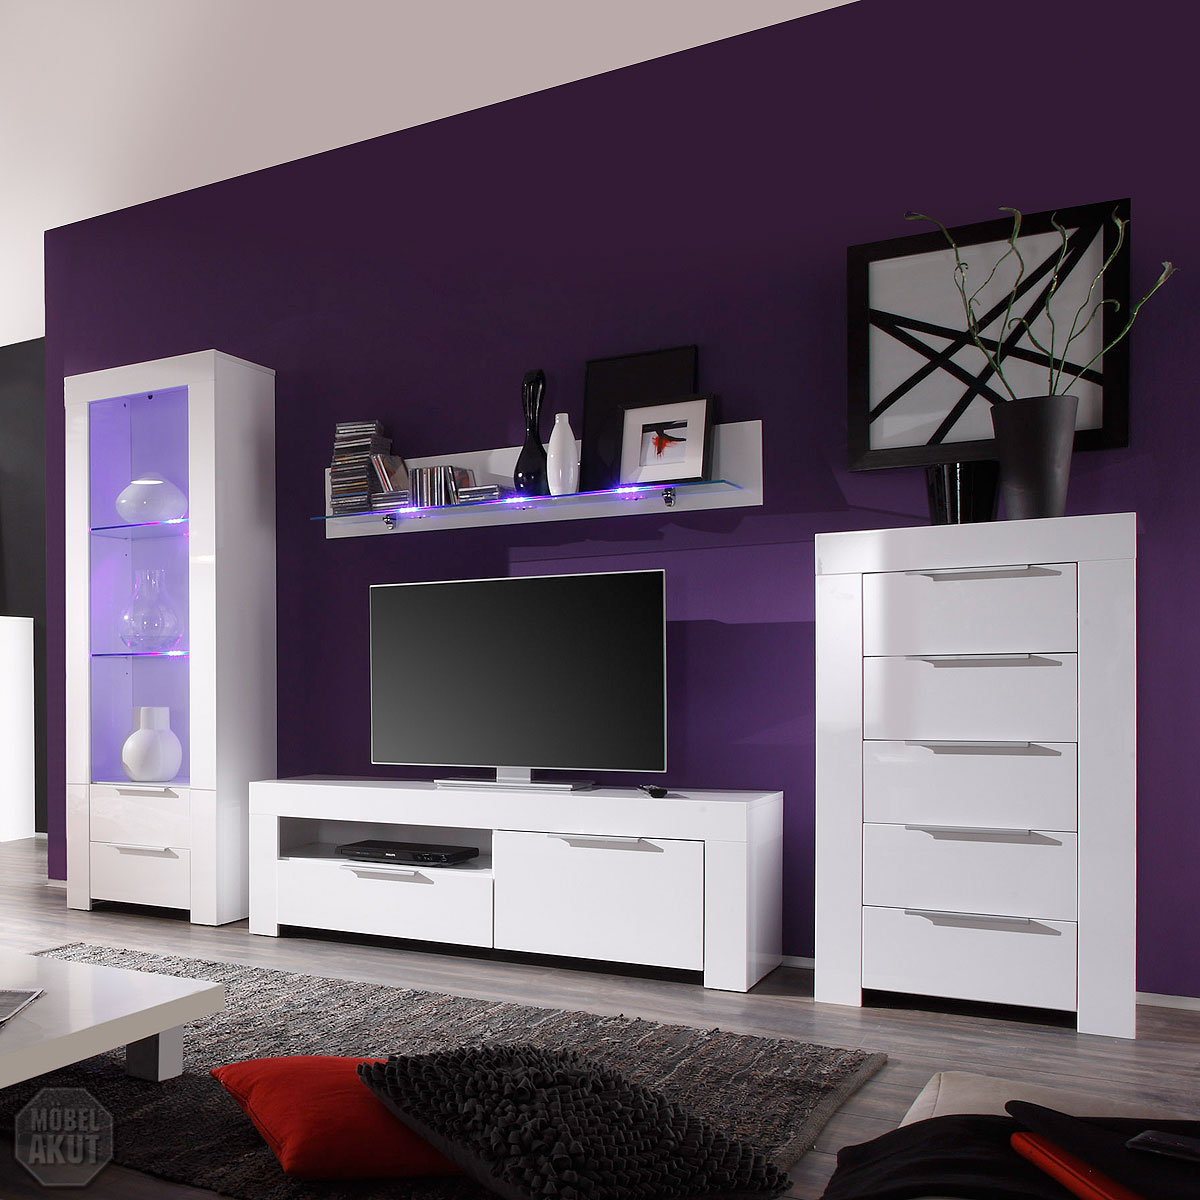 wohnwand mikado anbauwand wohnzimmer vitrine kommode tv board wei lack led ebay. Black Bedroom Furniture Sets. Home Design Ideas